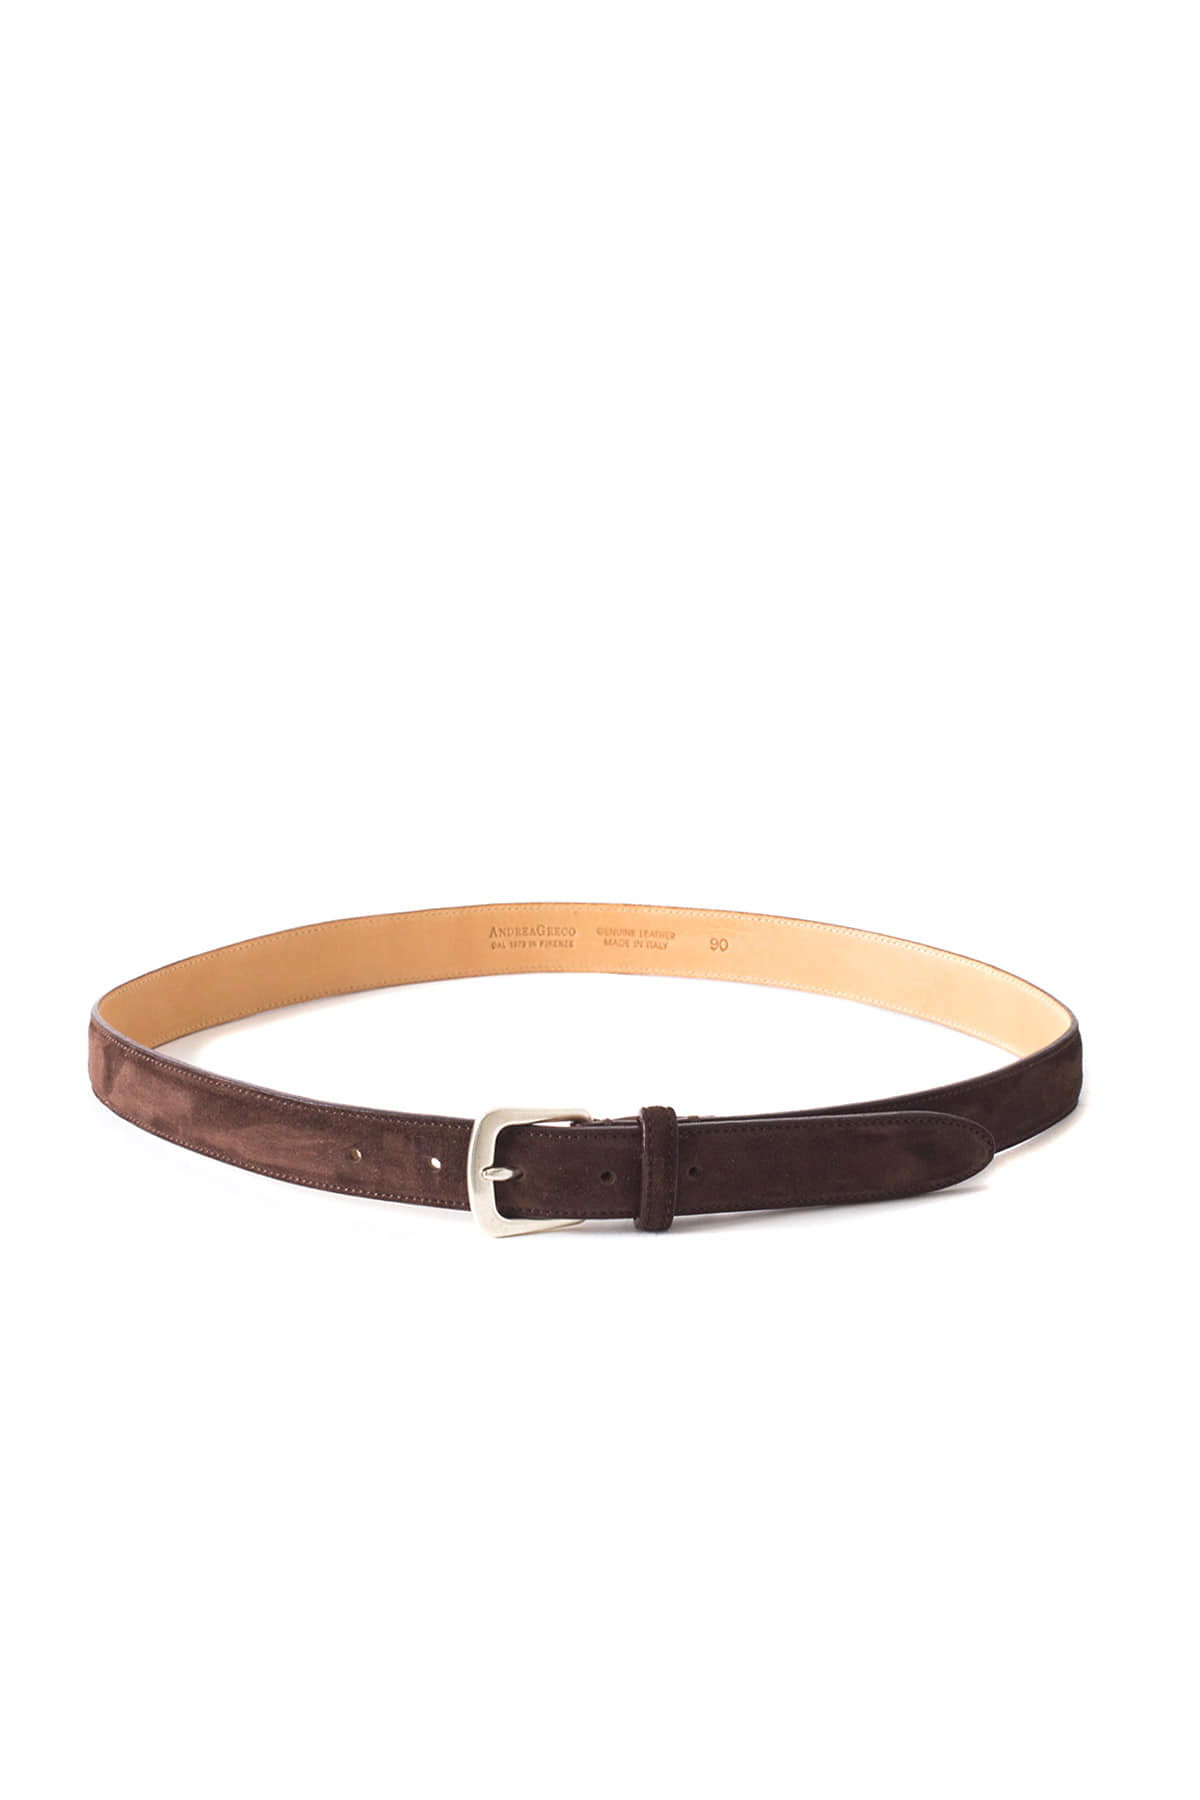 ANDREA GRECO : Cachemere Suede Calf Leather Belt (Sella)